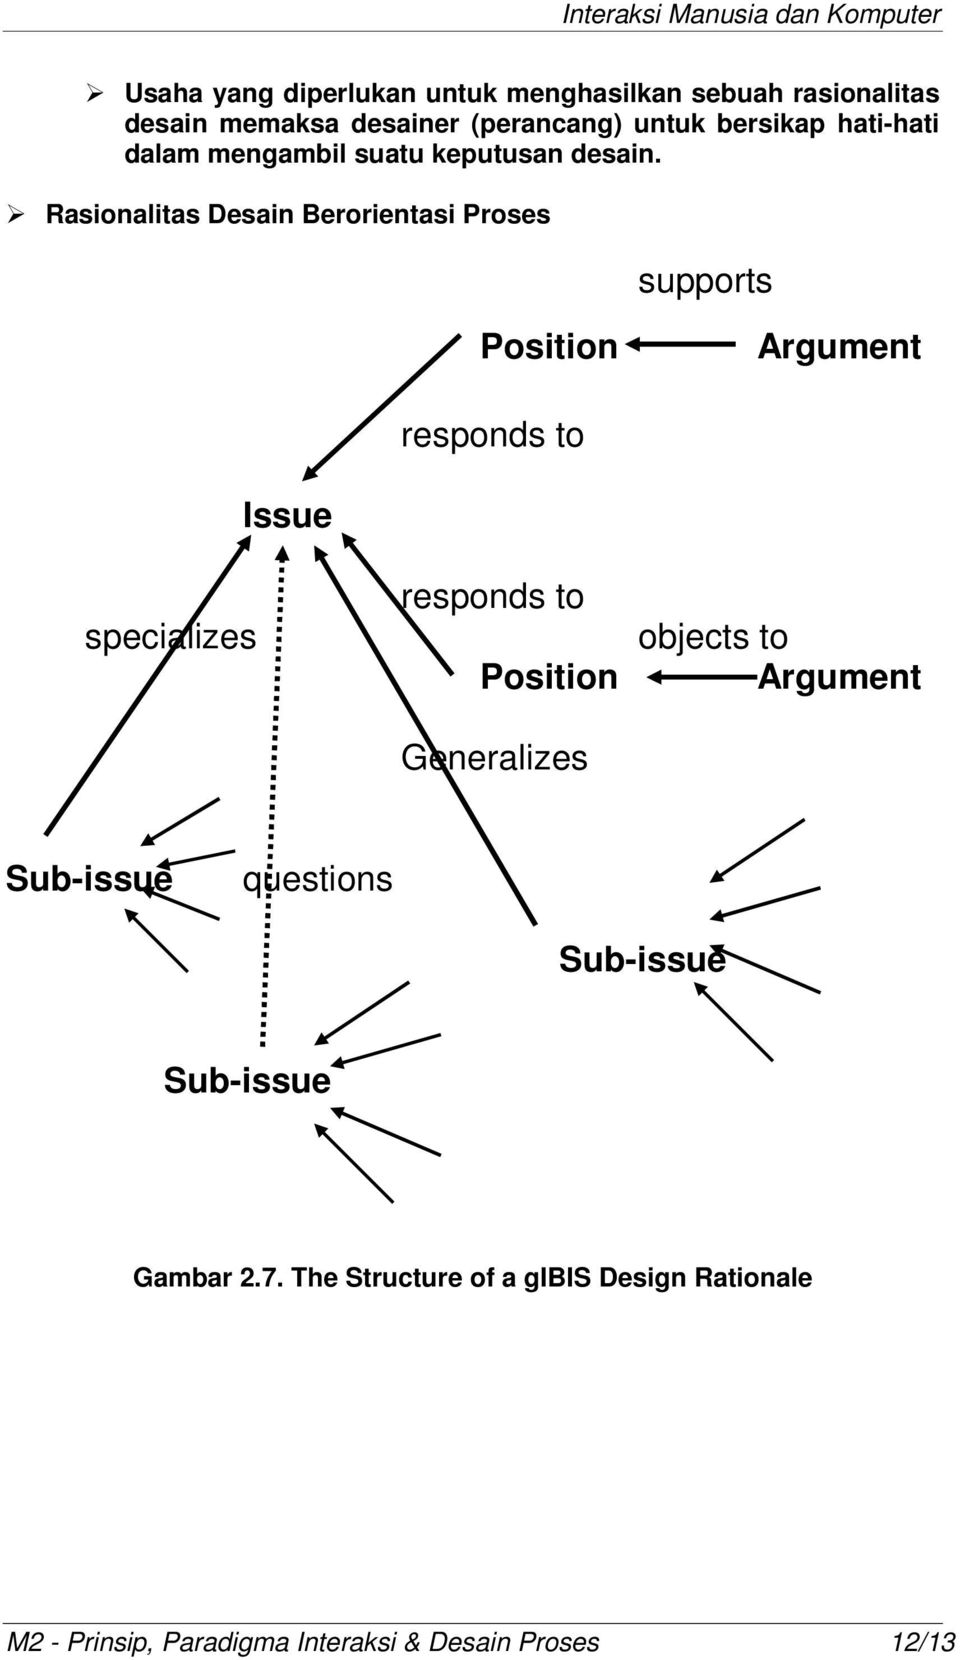 ¾ Rasionalitas Desain Berorientasi Proses supports Position Argument responds to specializes Issue responds to